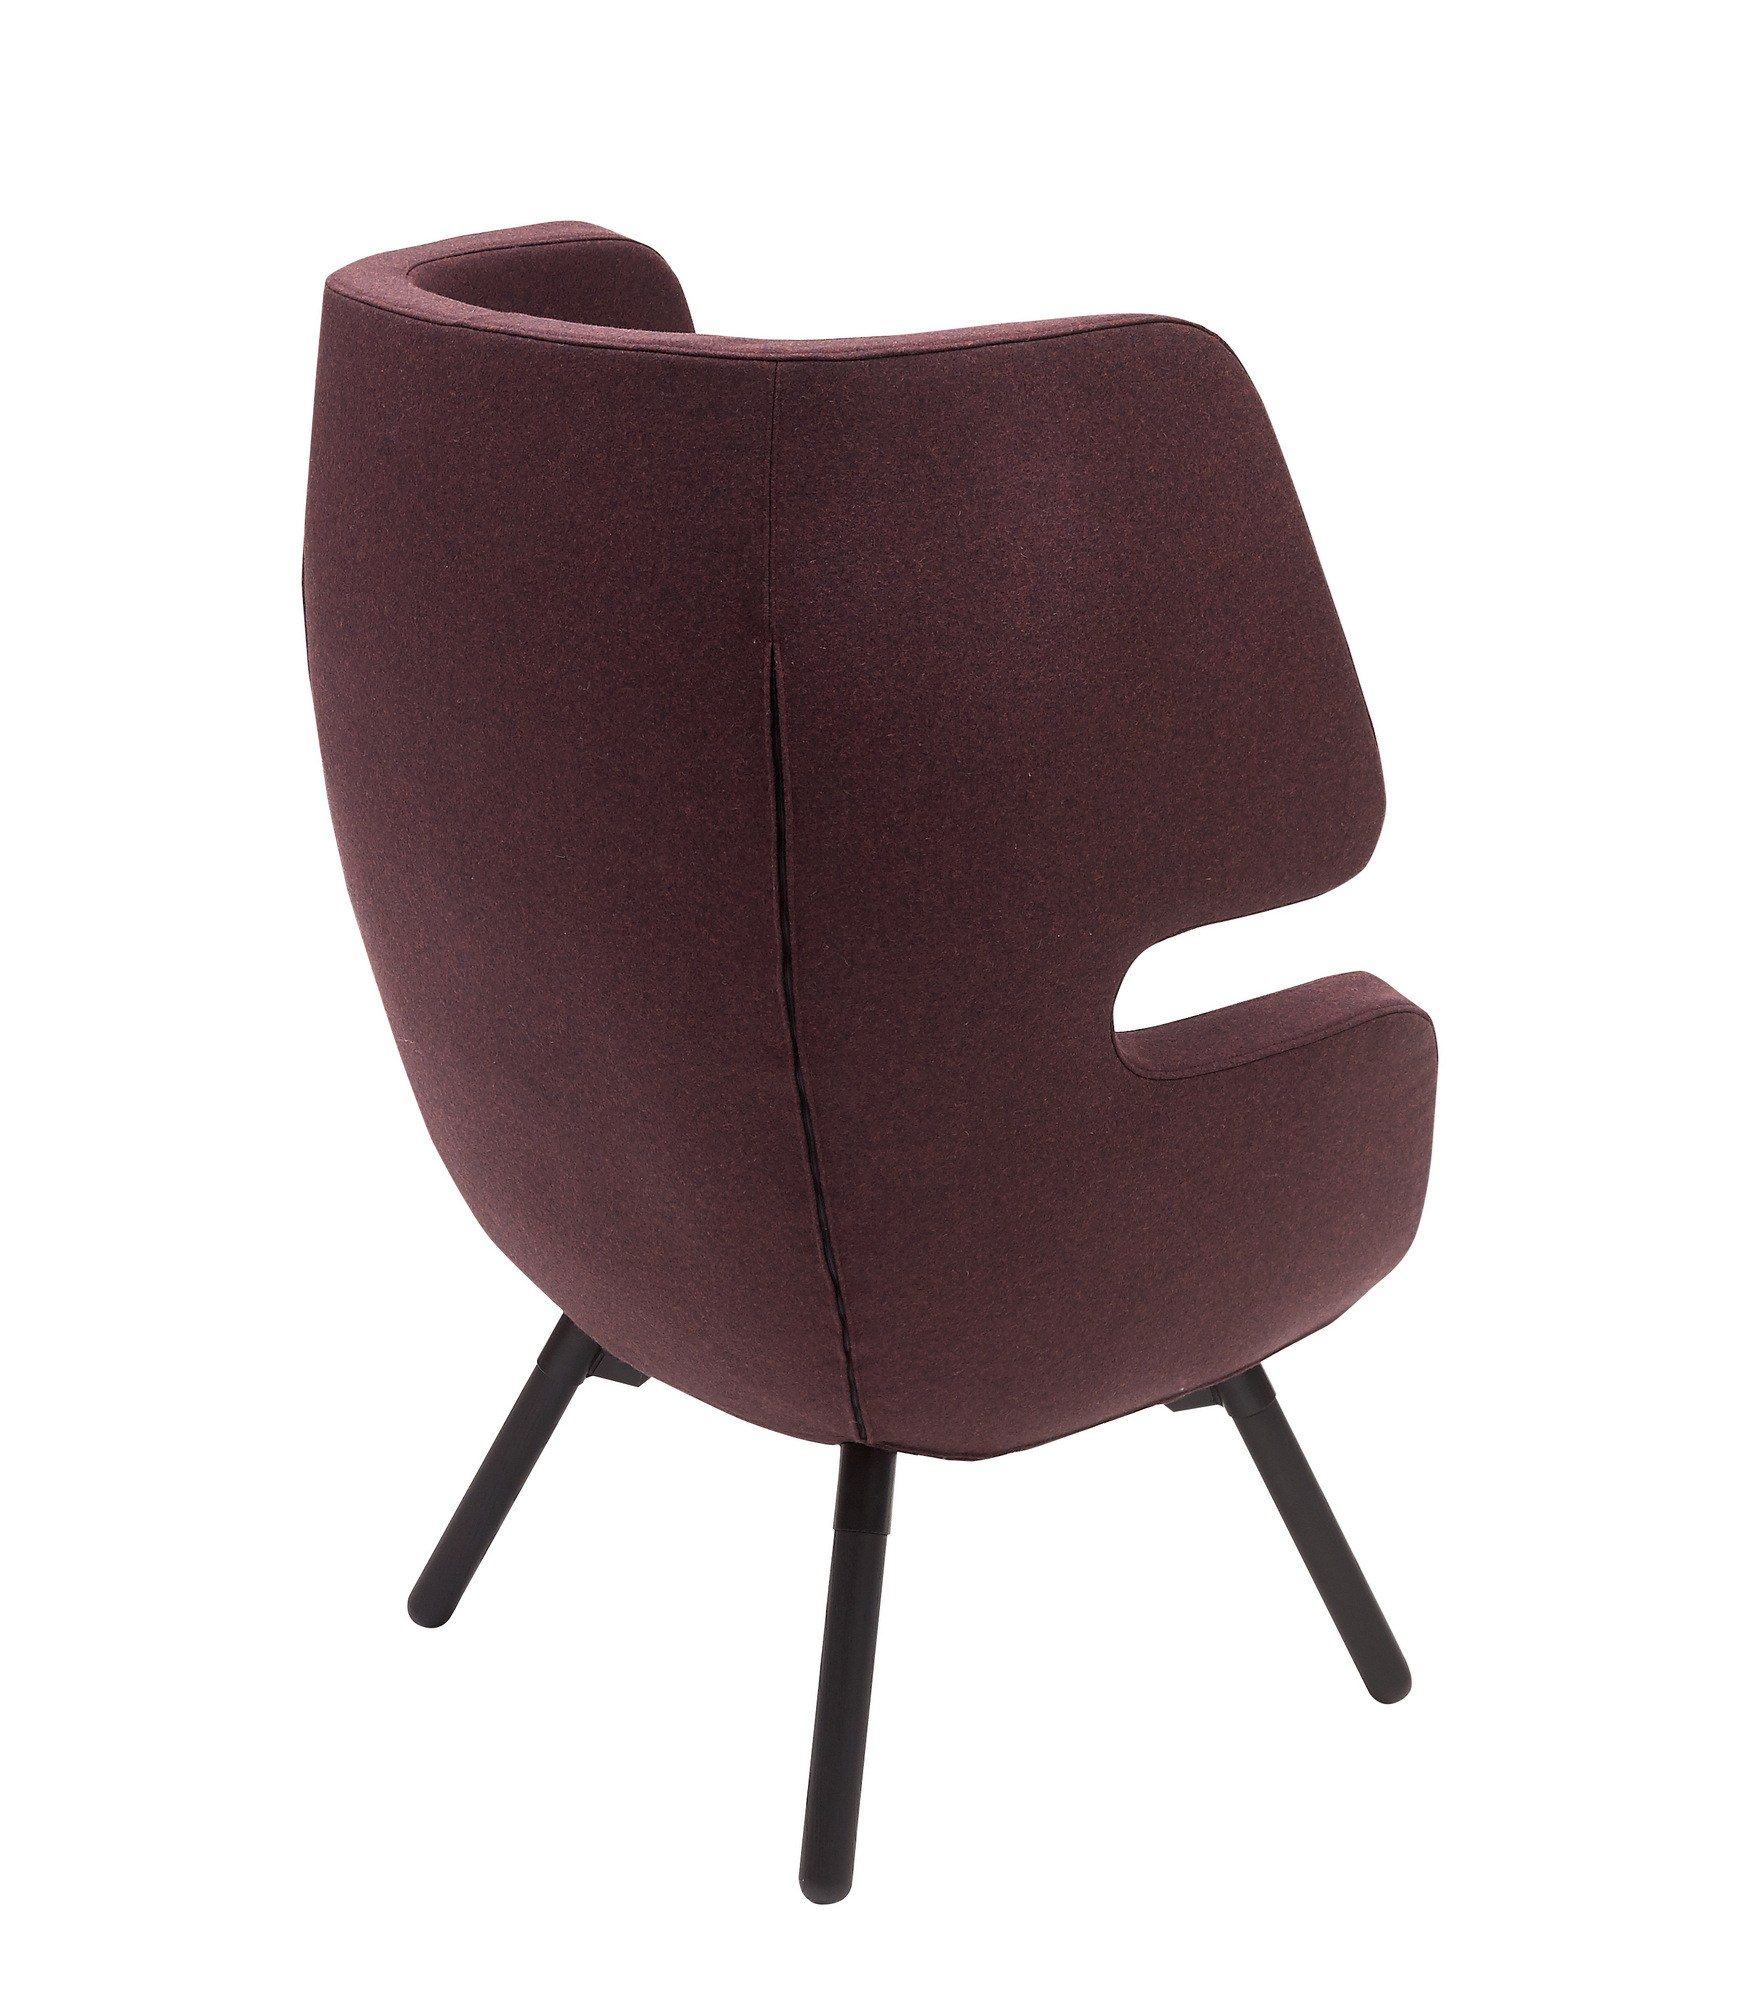 Moai Lounge Chair by Philip Bro for Softline